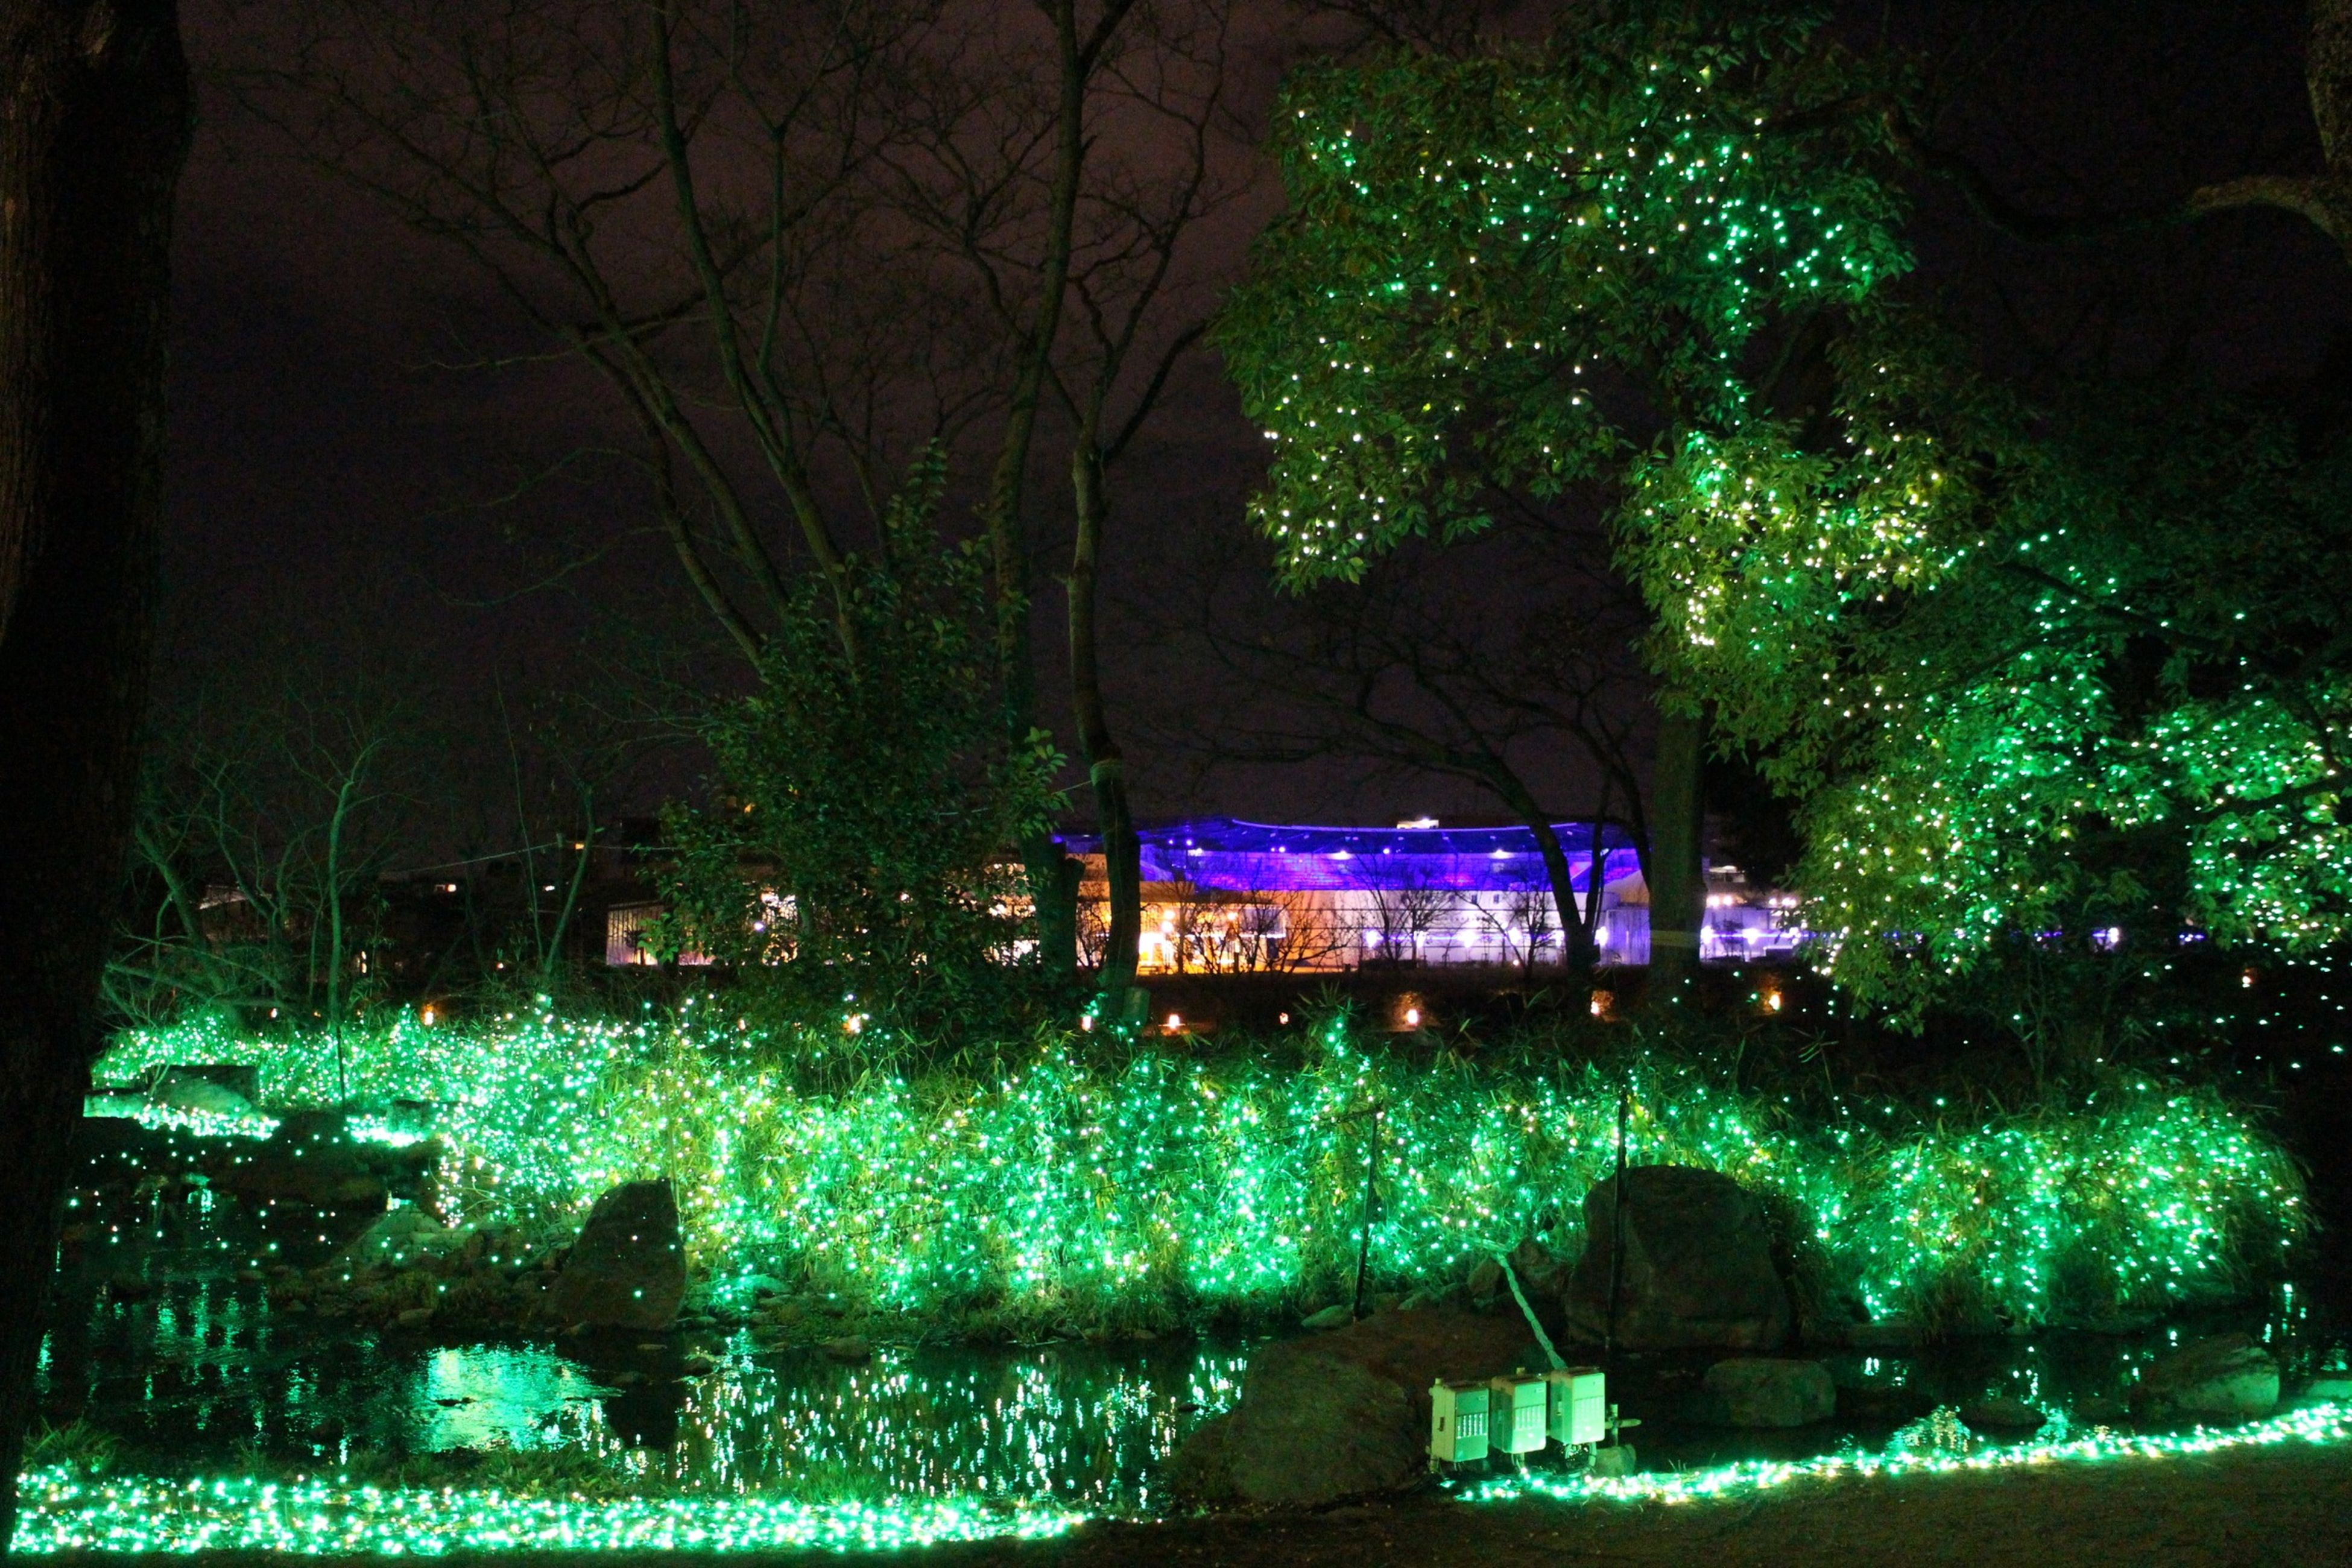 tree, illuminated, night, built structure, water, architecture, growth, building exterior, nature, house, branch, tranquility, lighting equipment, park - man made space, green color, reflection, outdoors, no people, tranquil scene, blue